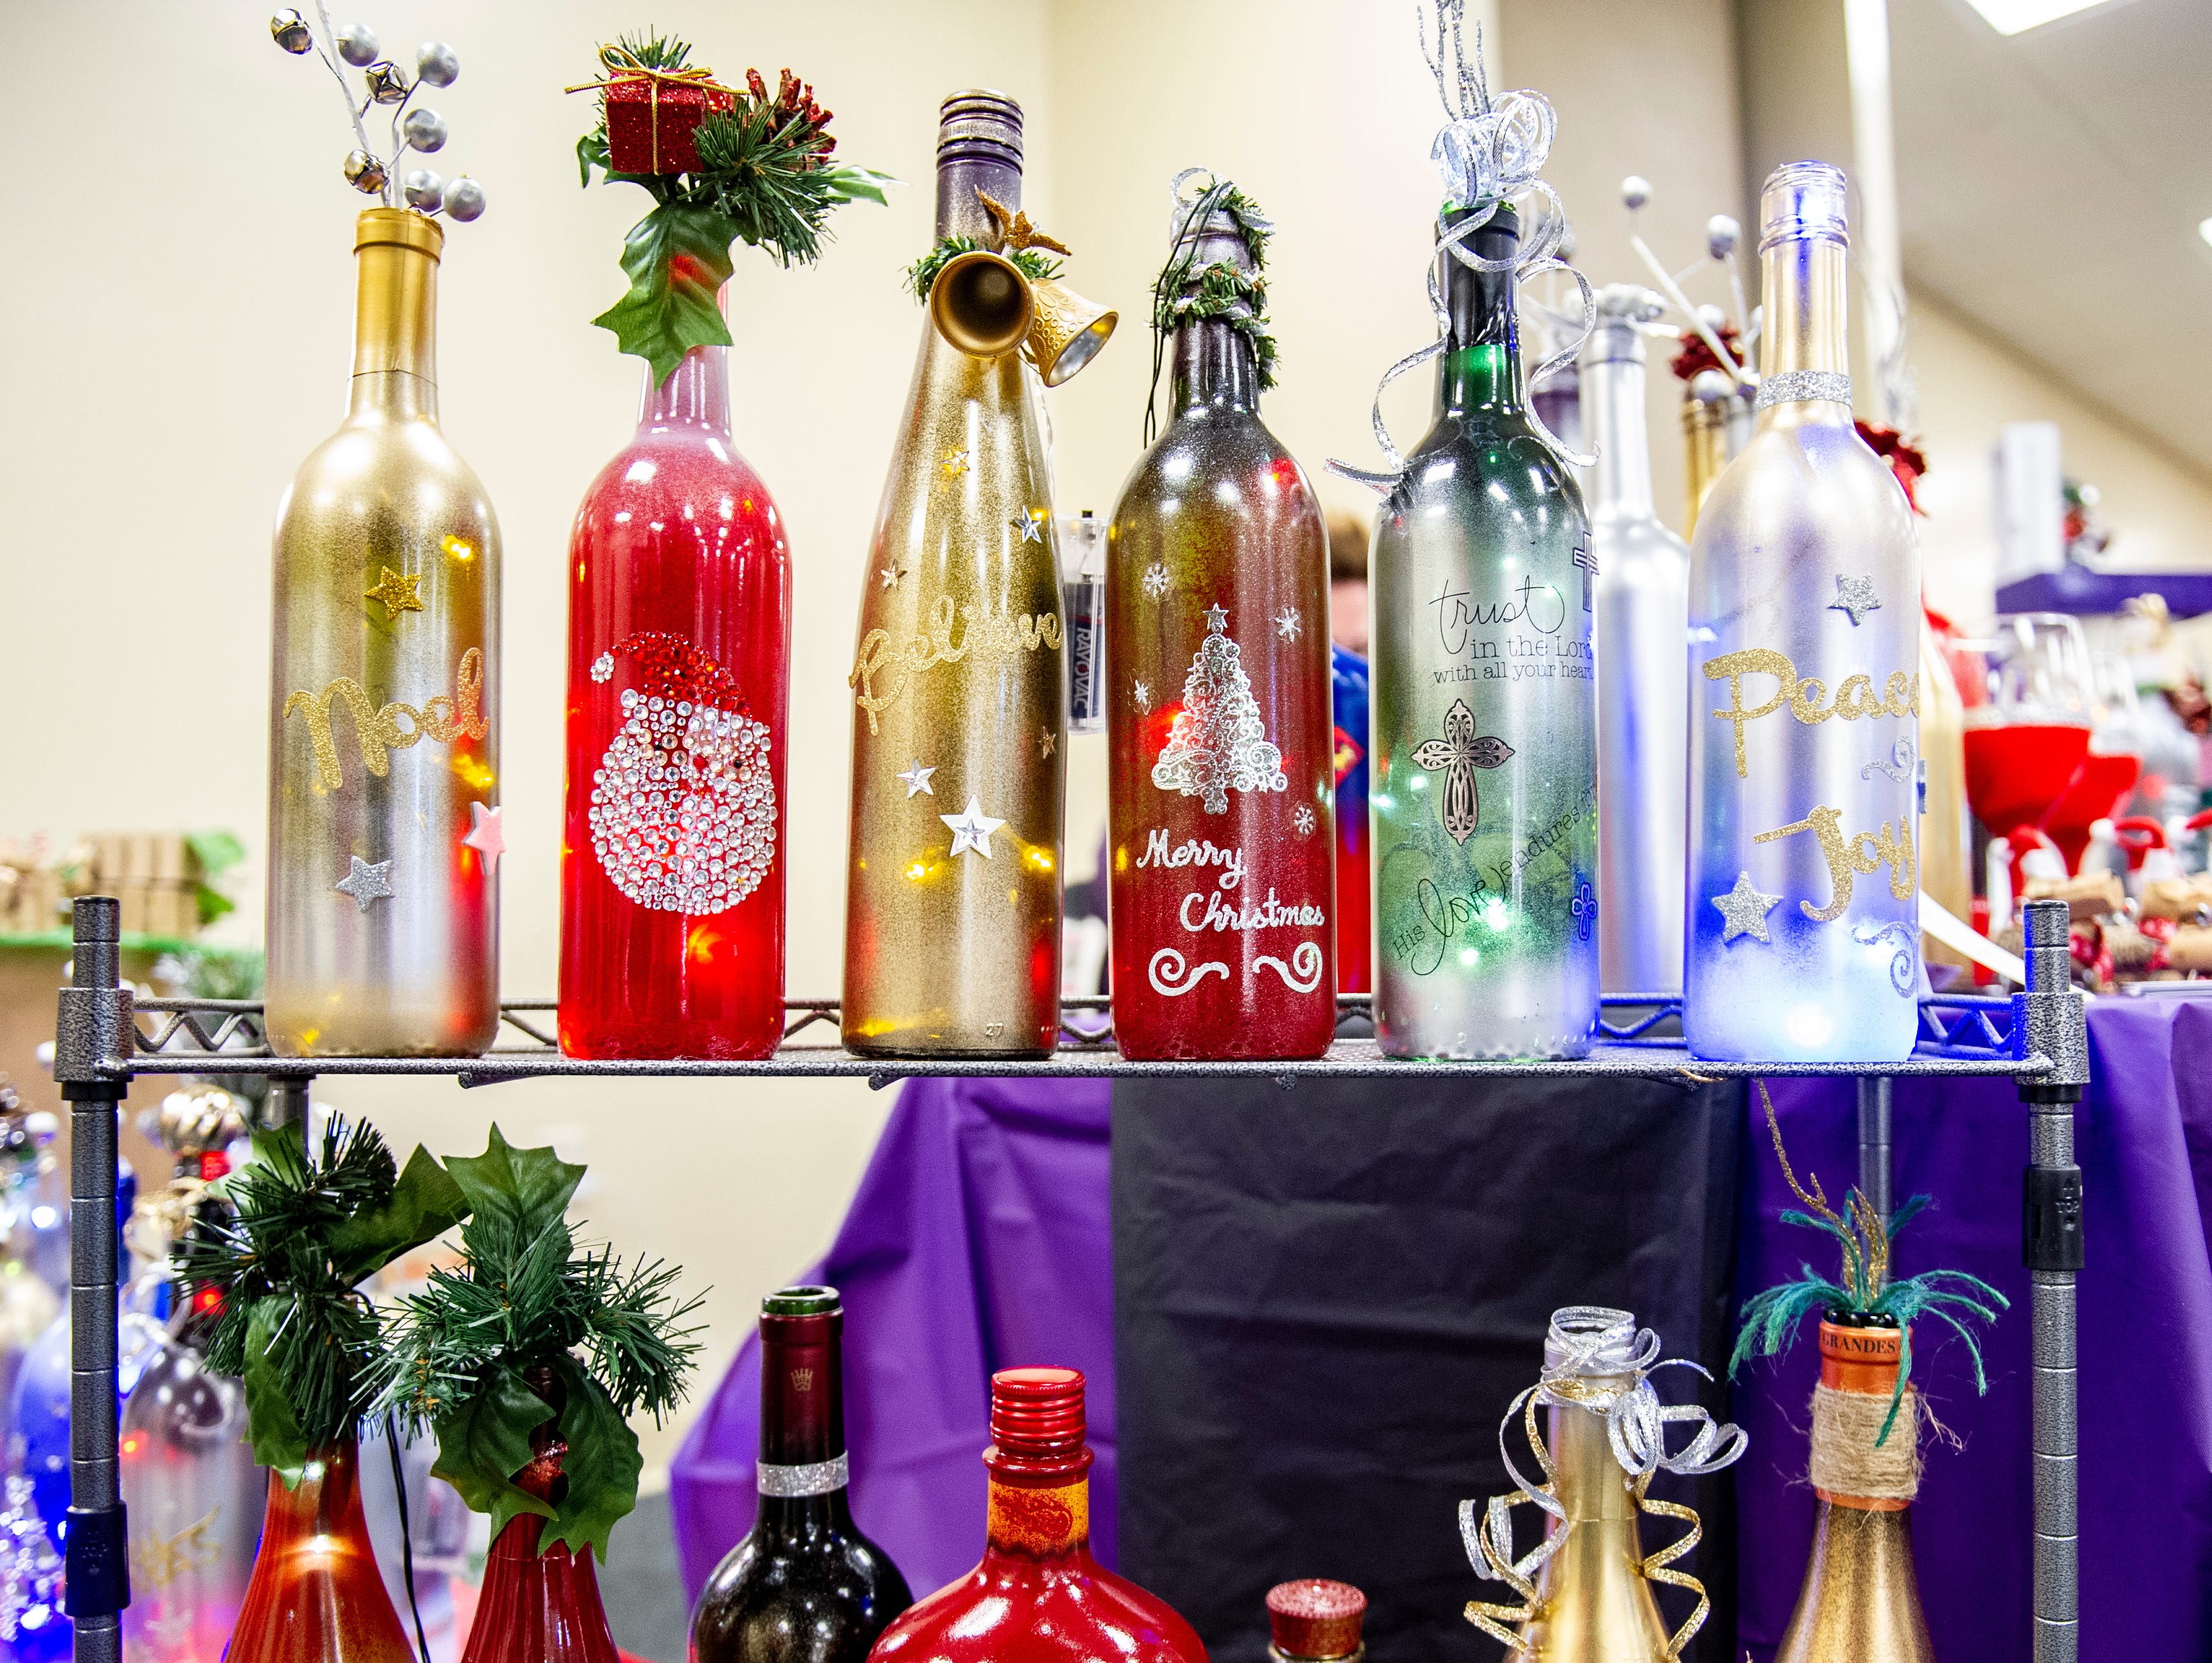 Rescued, recycled and re-purposed items all in the name of art was the name of the game at the Rustiqueiowa Homespun Holiday Market held at the Trinity Presbyterian Church in Indianola Nov. 24, 2018.